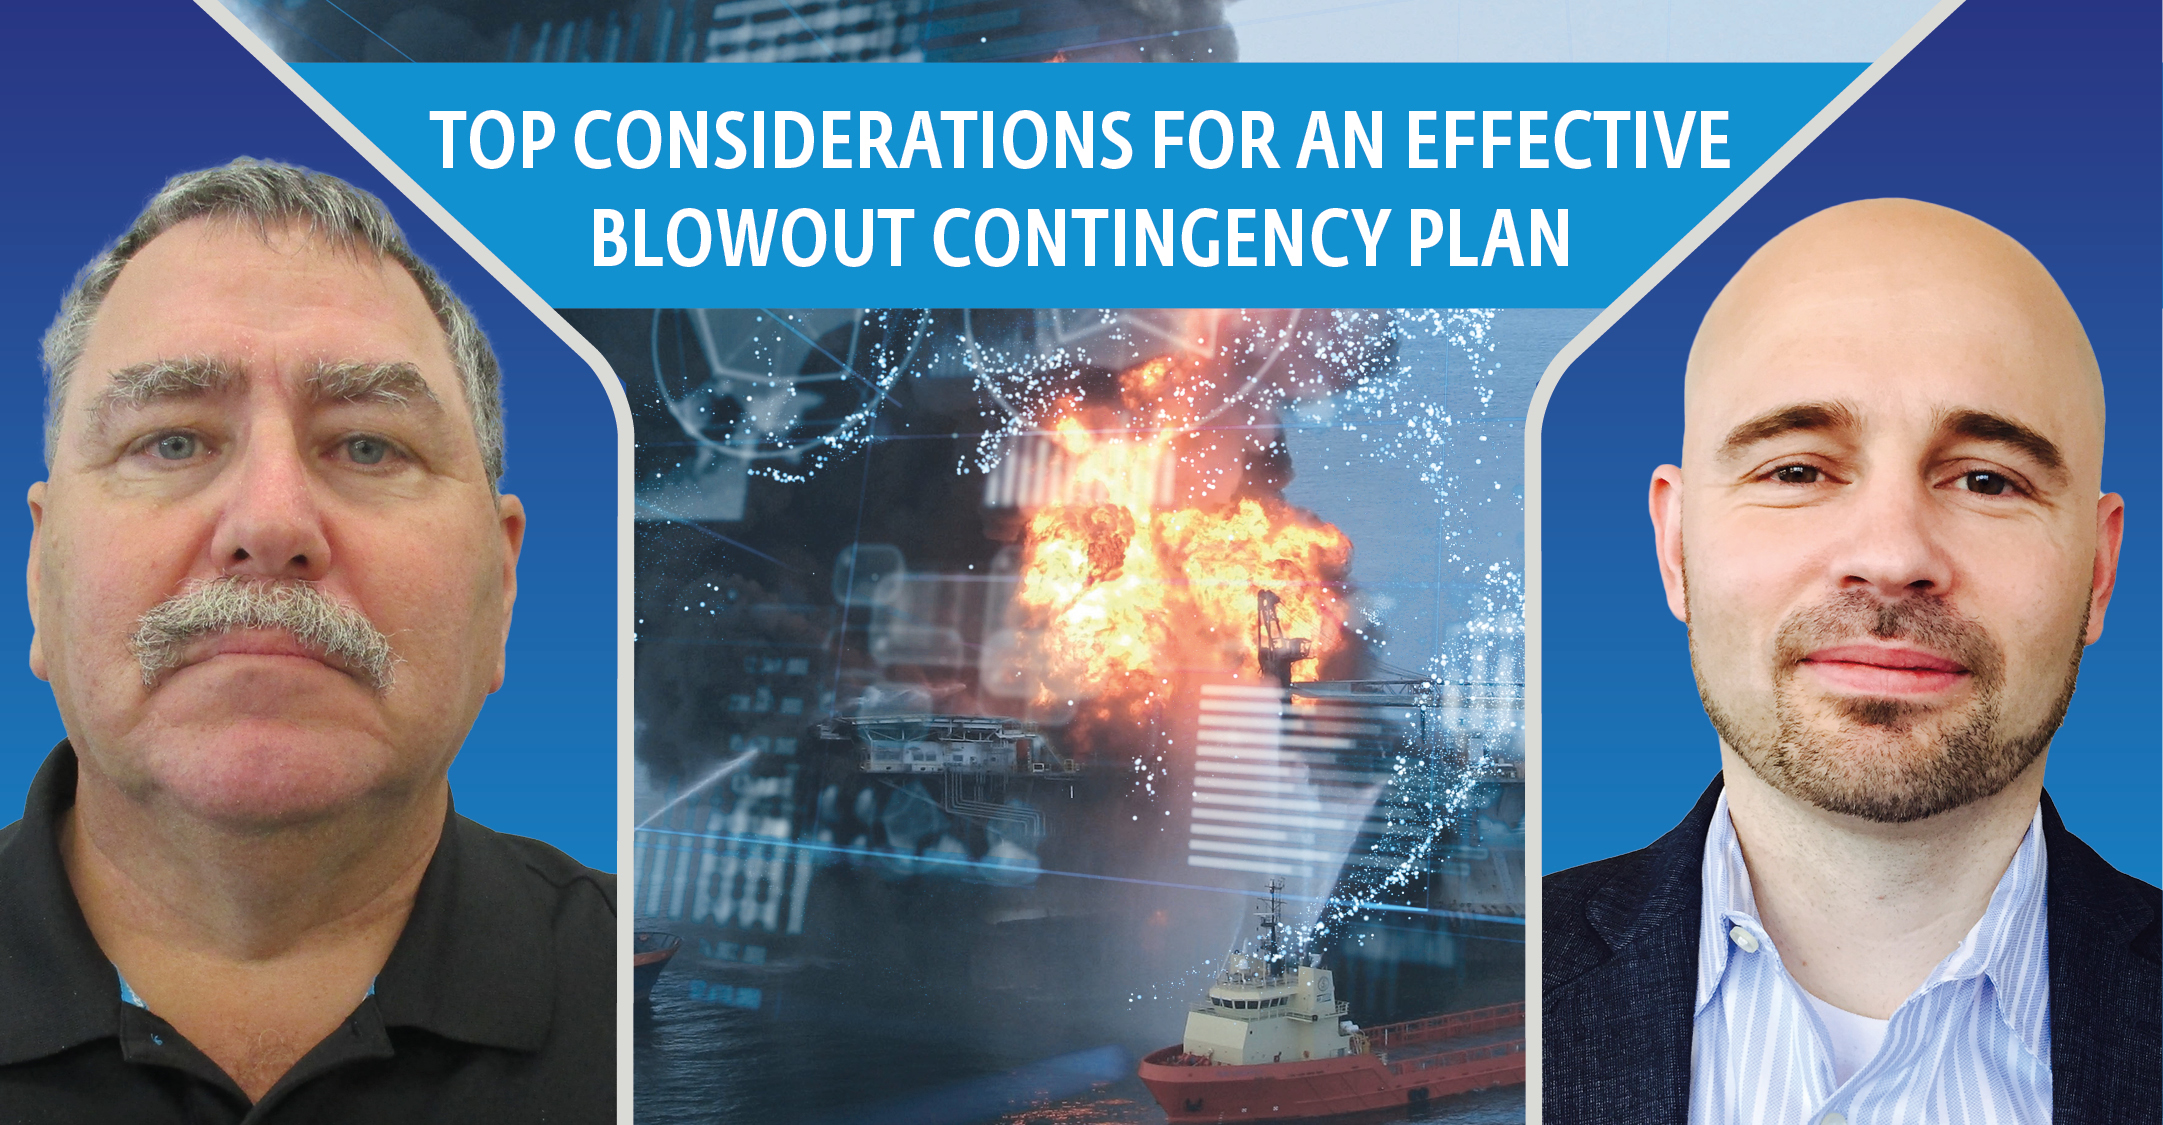 Top considerations for an effective blowout contingency plan